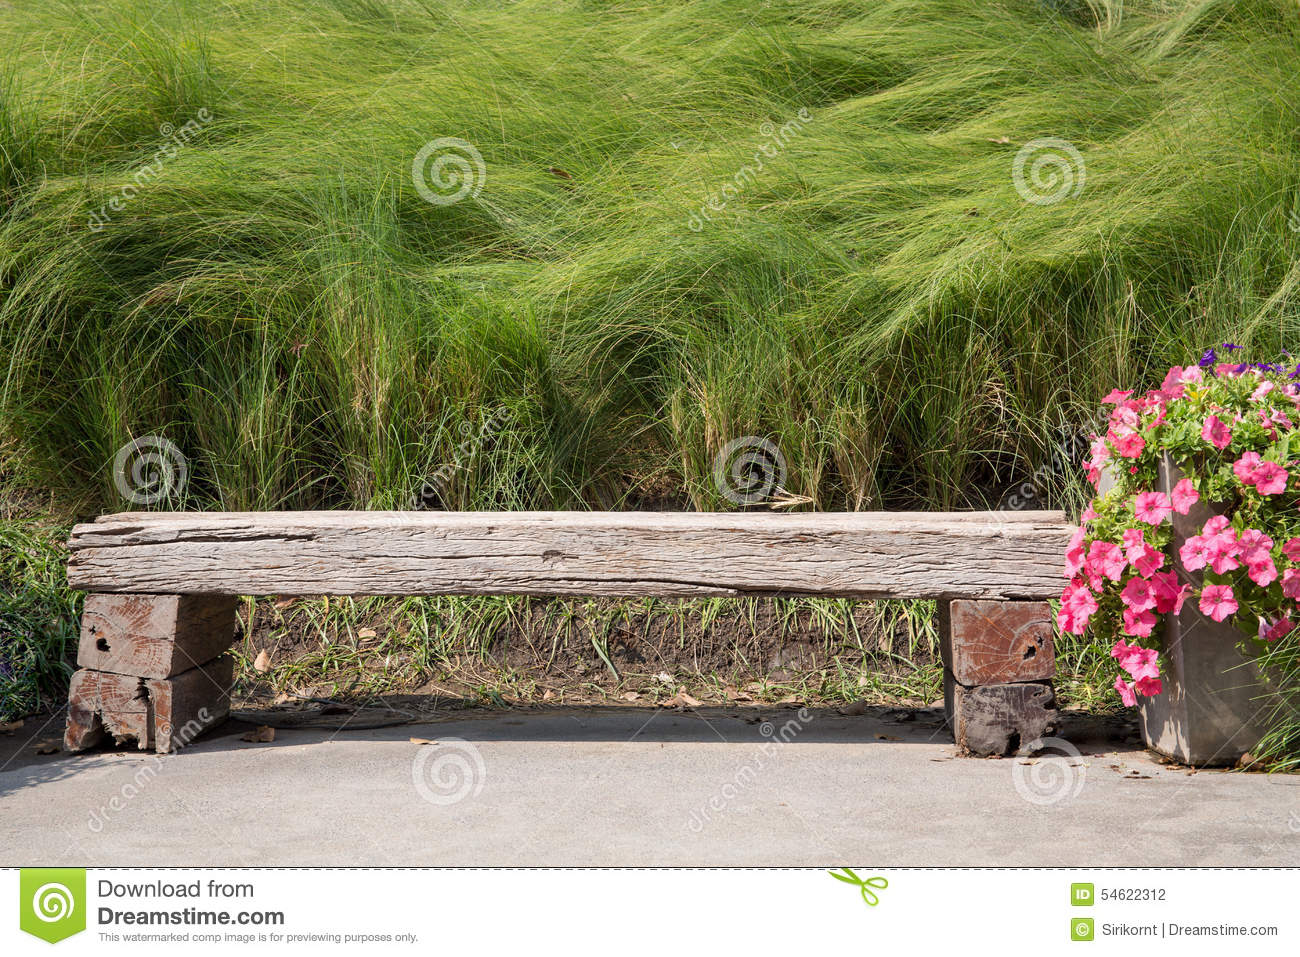 Long Wood Chair In A Garden Stock Photo - Image: 54622312